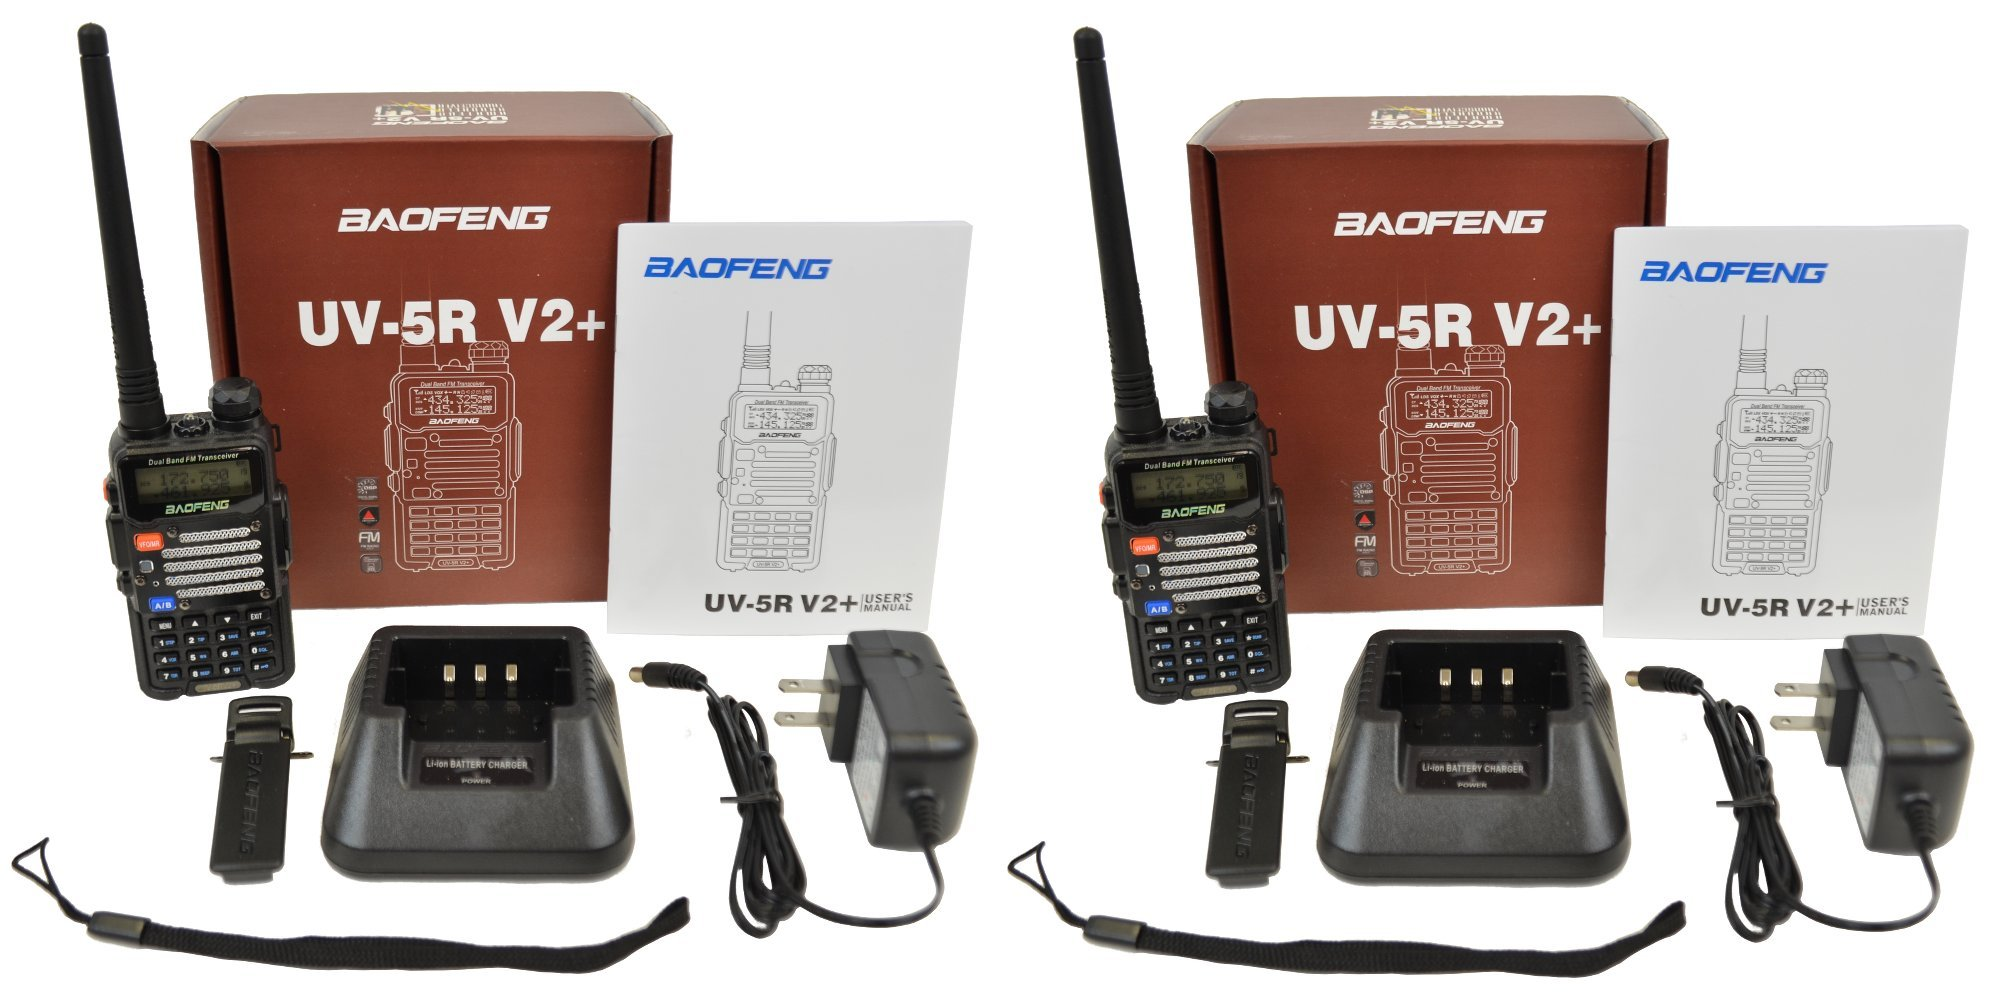 Baofeng 2-Pack UV-5R V2+UV-5R V2+ Plus Dual-Band 136-174/400-480 MHz FM Ham Two-way Radio, Improved Stronger Case, Enhanced Features - Black 2 pack (Latest 2014 Firmware) by BaoFeng (Image #6)